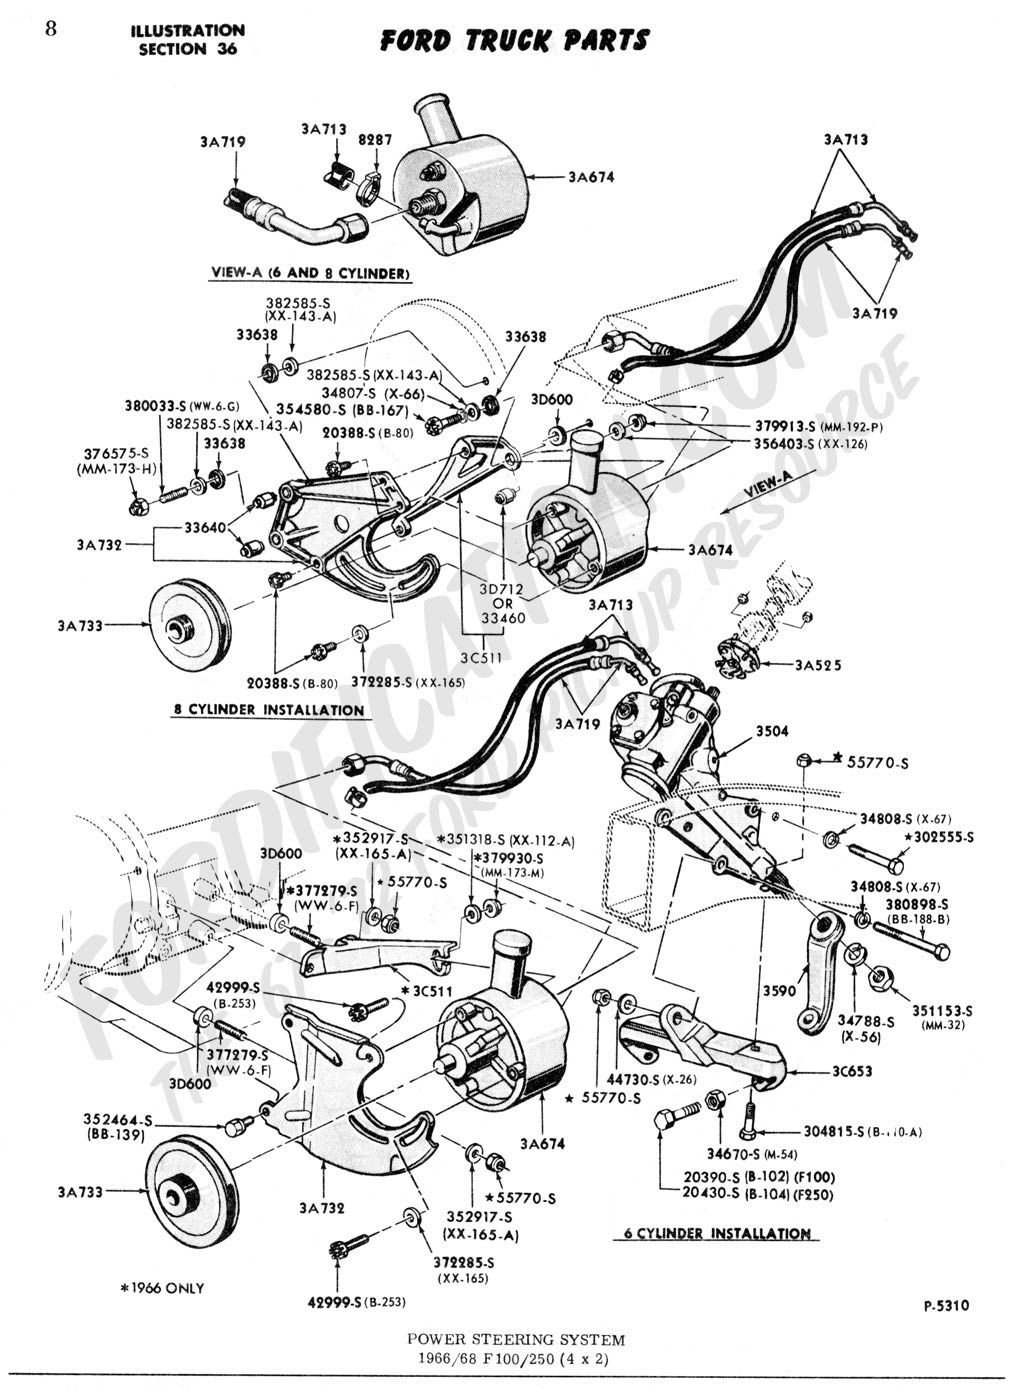 Car Power Steering Pump In Truck